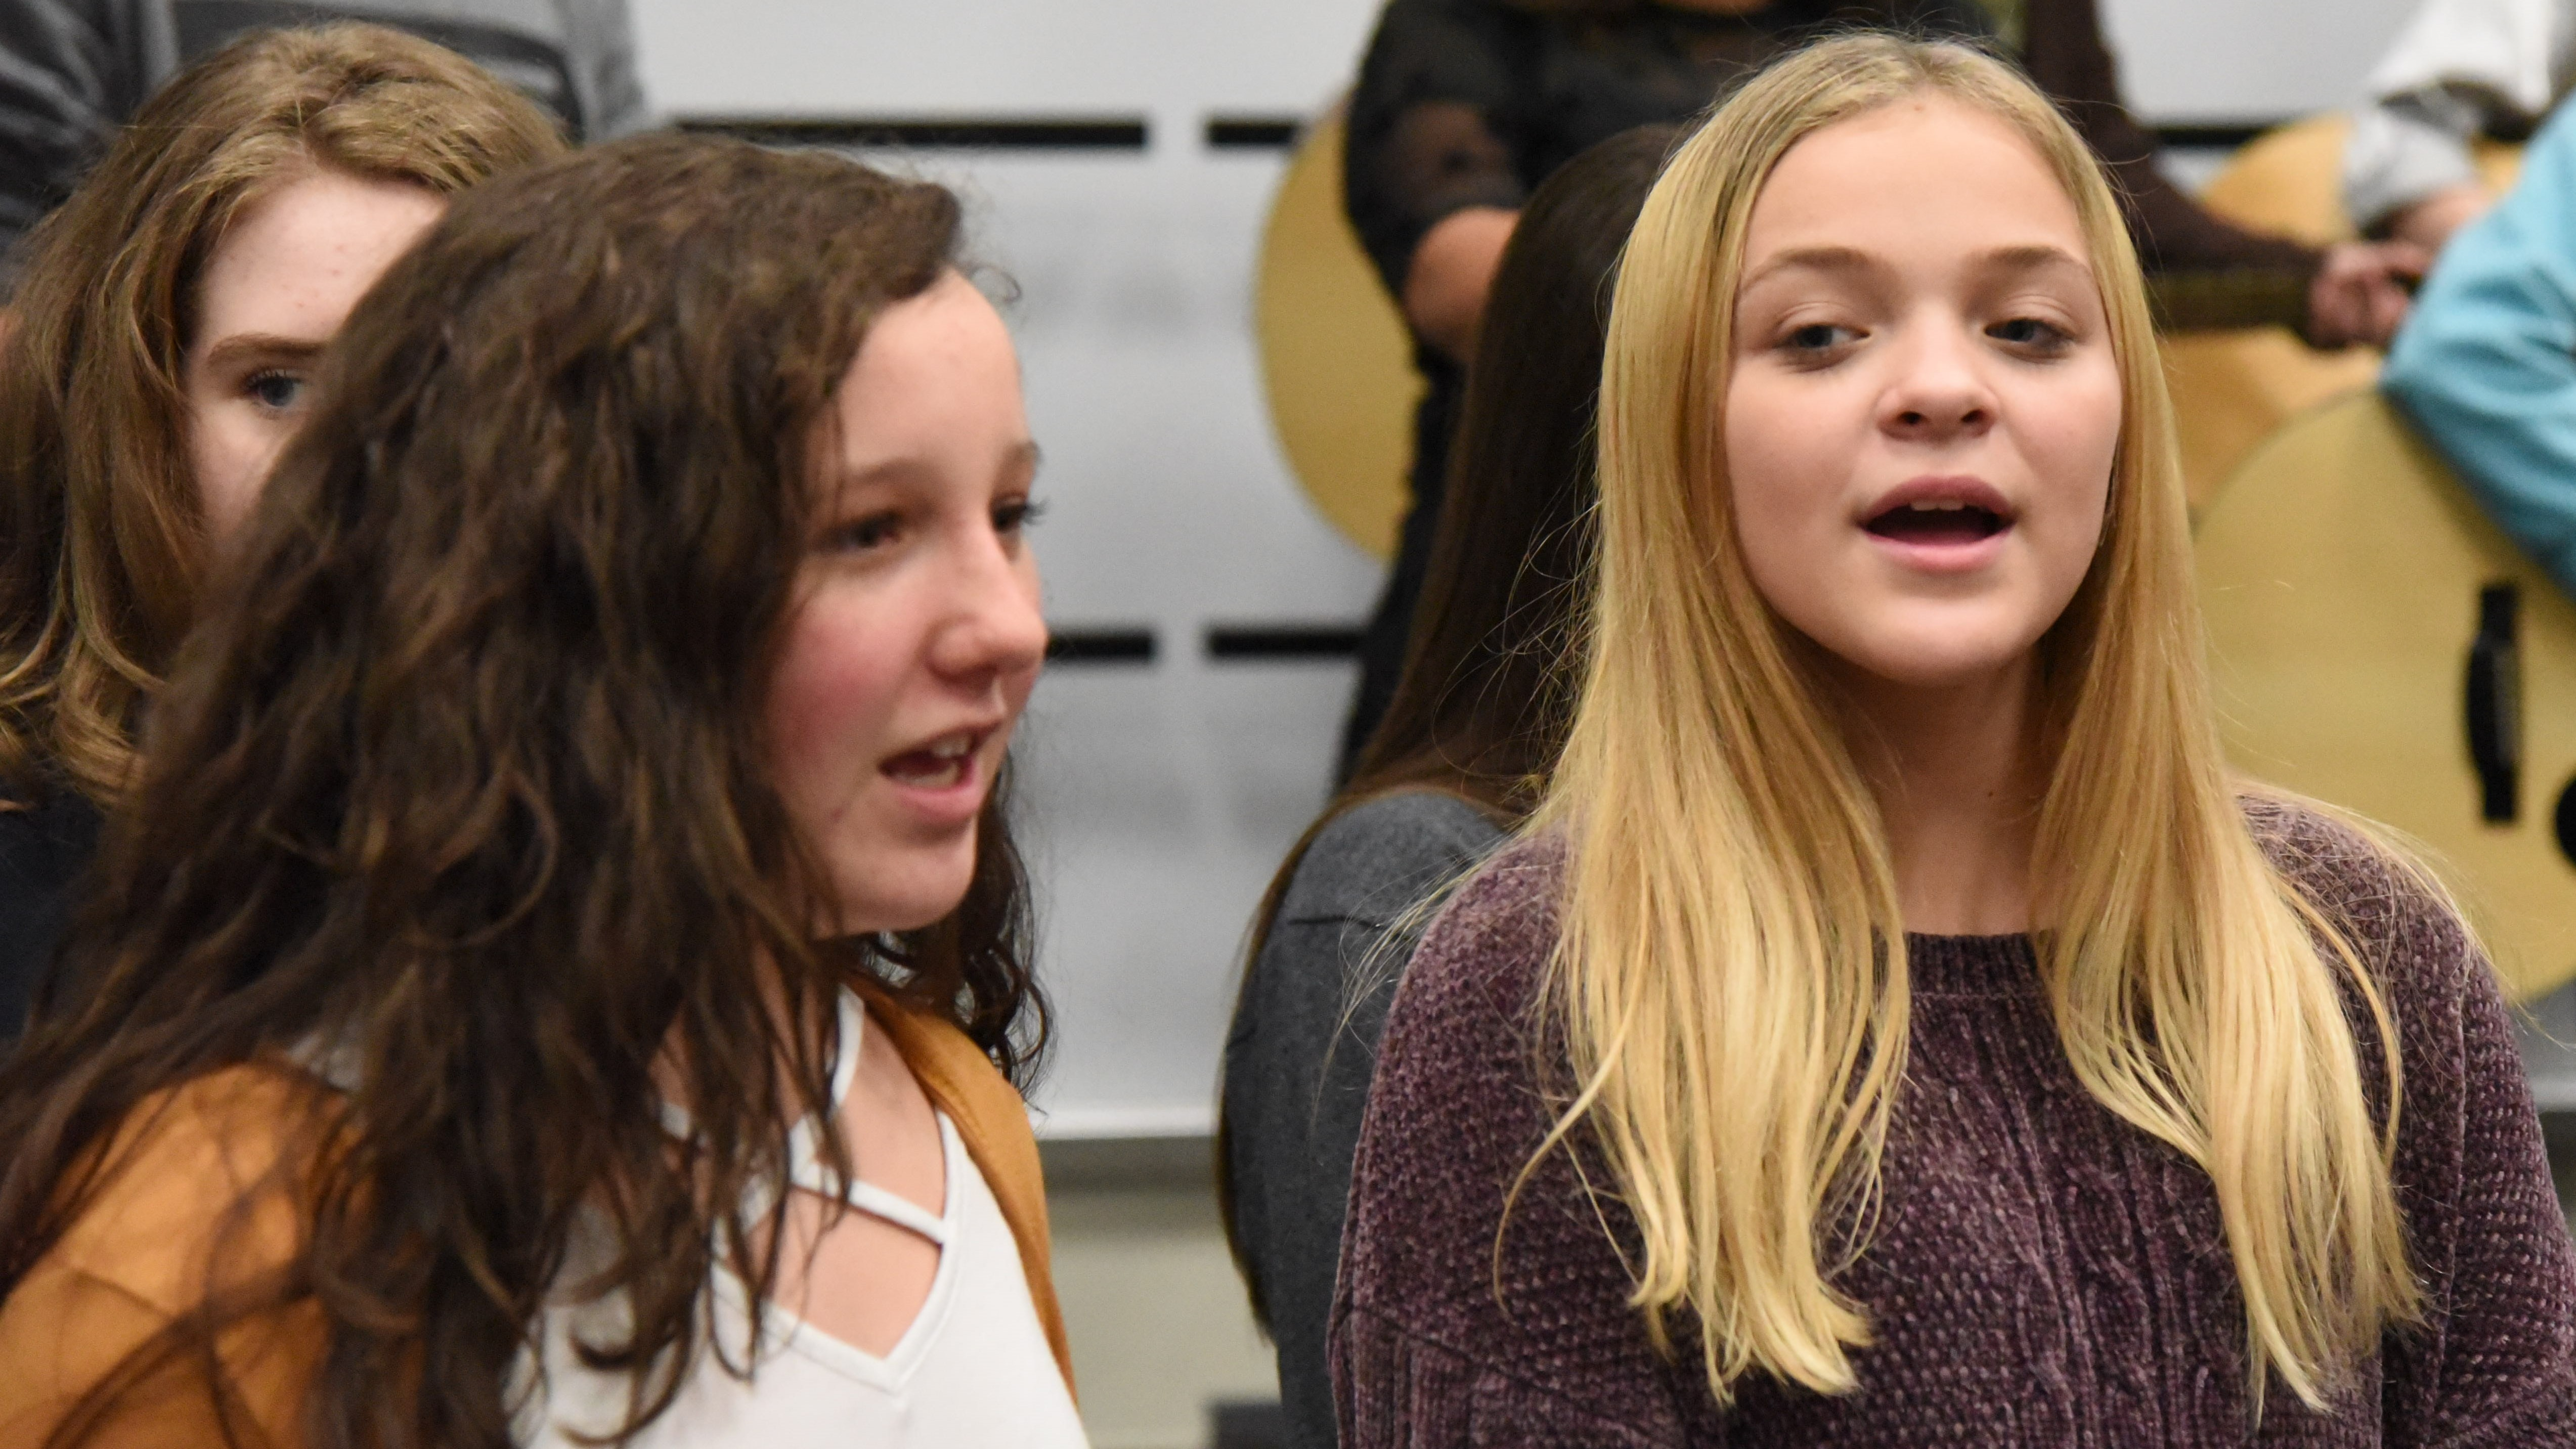 At a benefit concert for the Songbirds Foundation, 15 students from Karns Middle School will perform as backup singers for Chris Blue, while 10 students will play guitar.